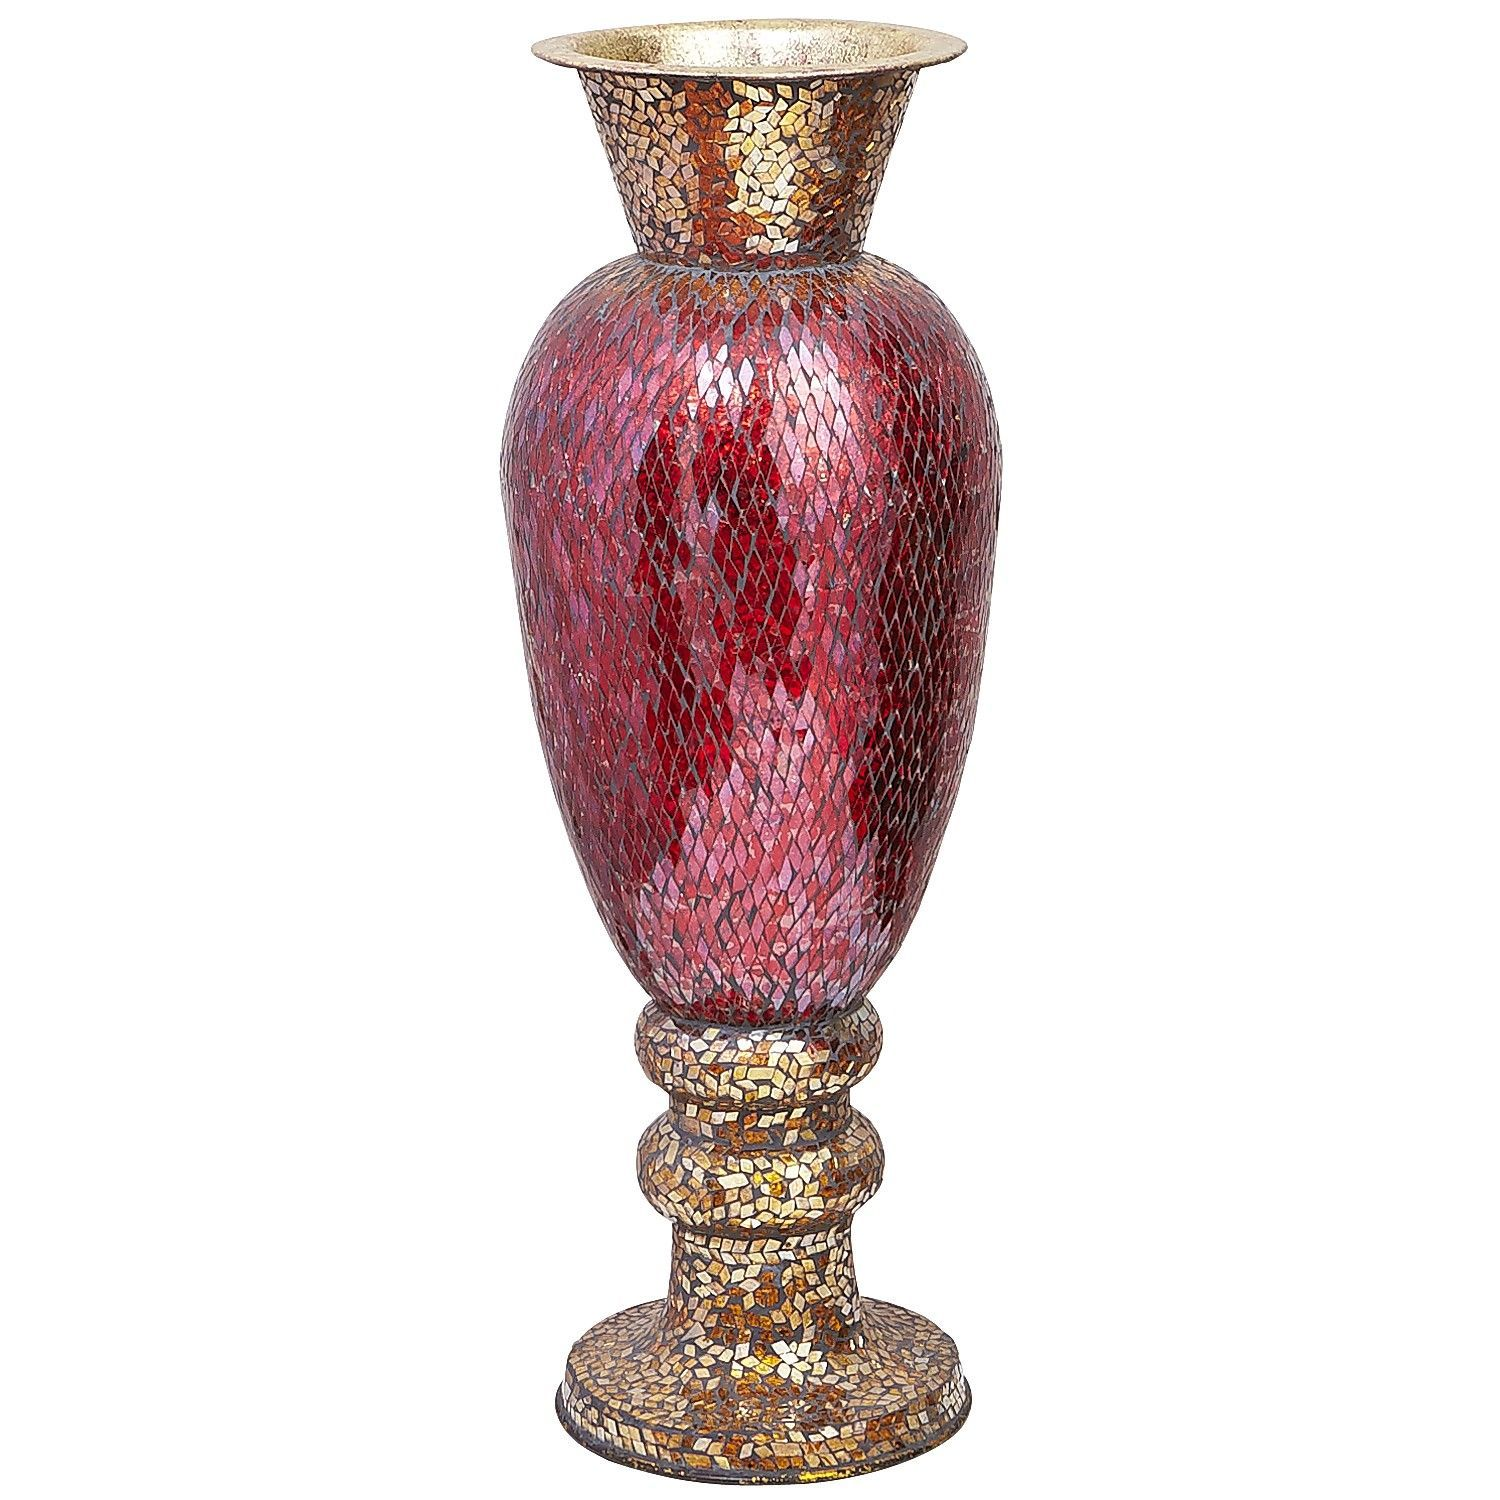 Large Decorative Urns And Vases Red & Gold Mosaic Urn Vase  Home Decor  Pinterest  Red Gold